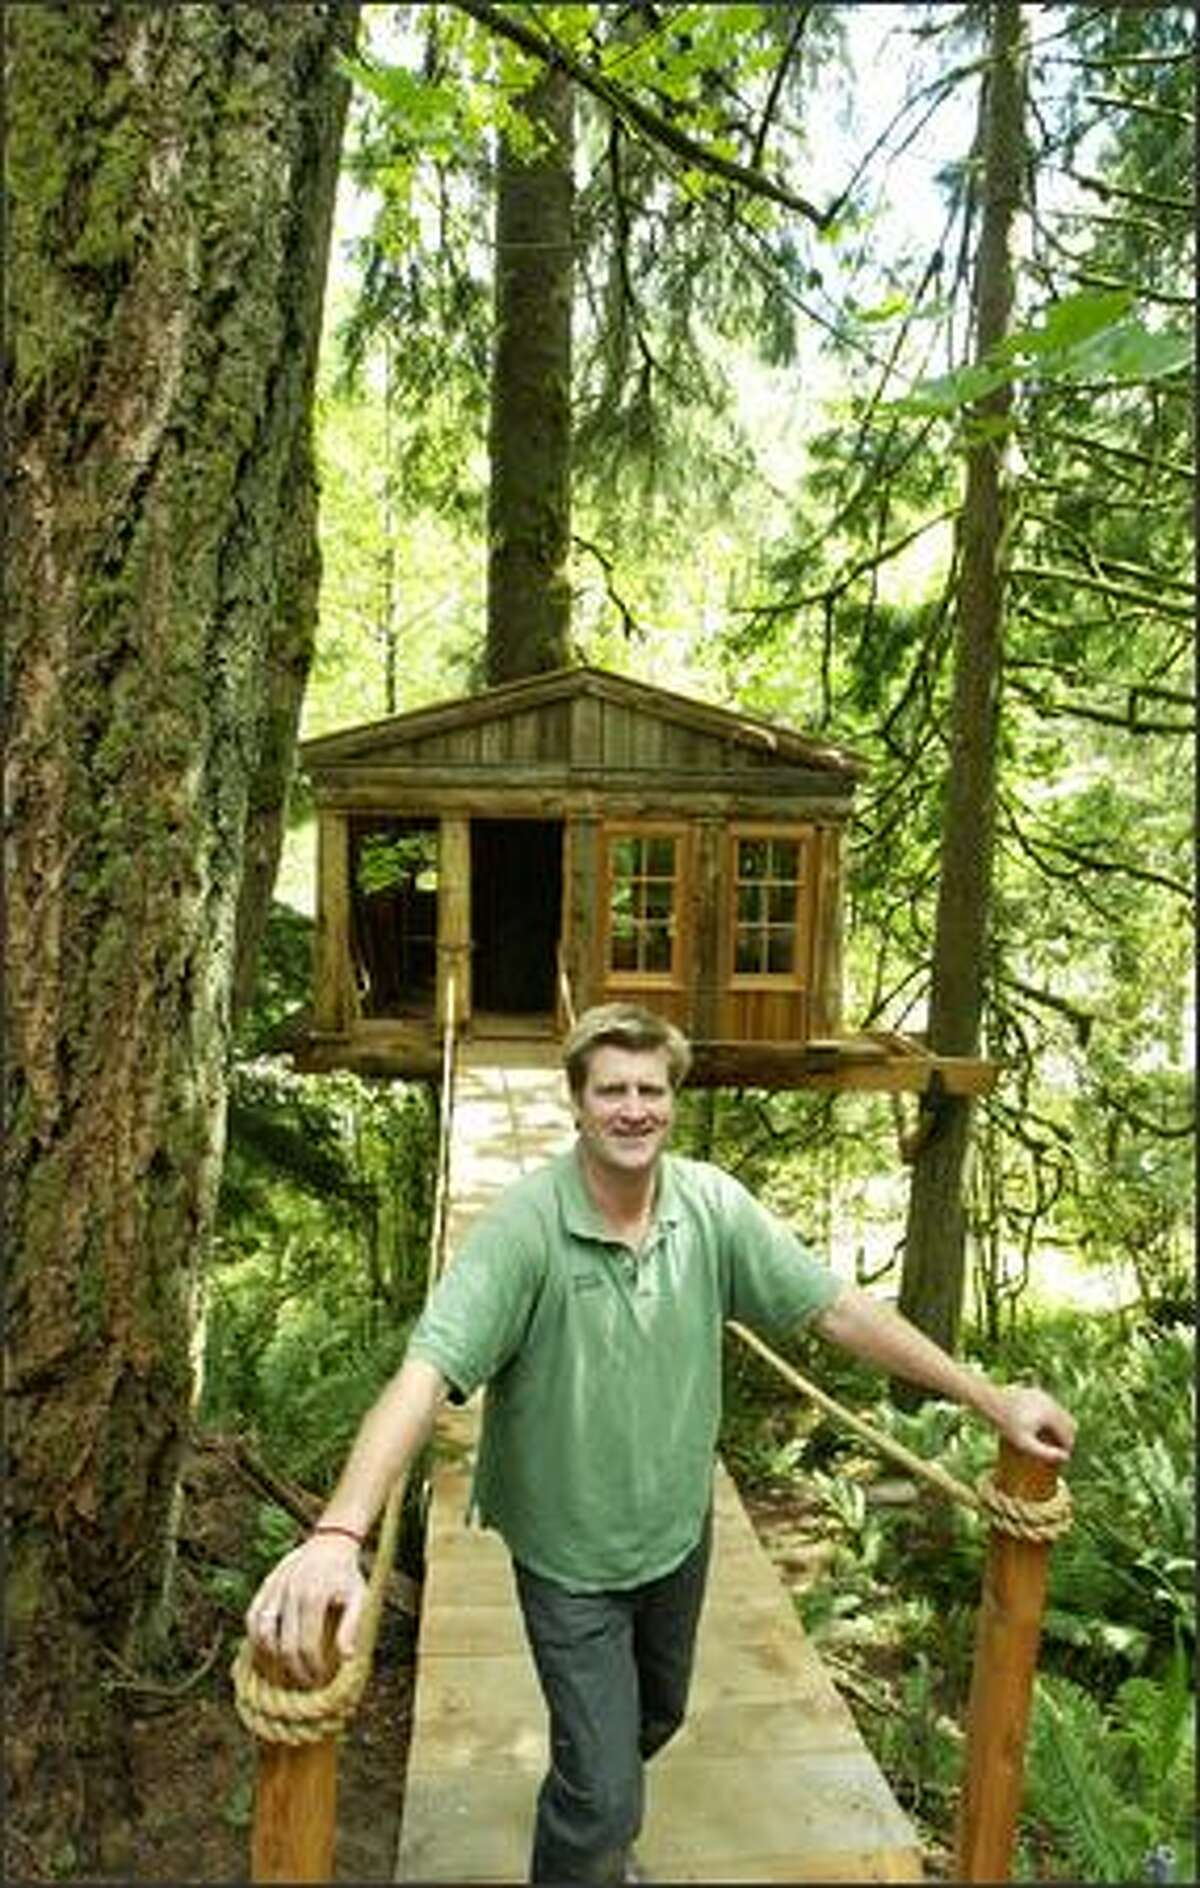 TreeHouse Workshop co-owner Pete Nelson stands in front of one of the treehouses built by participants in his workshop.